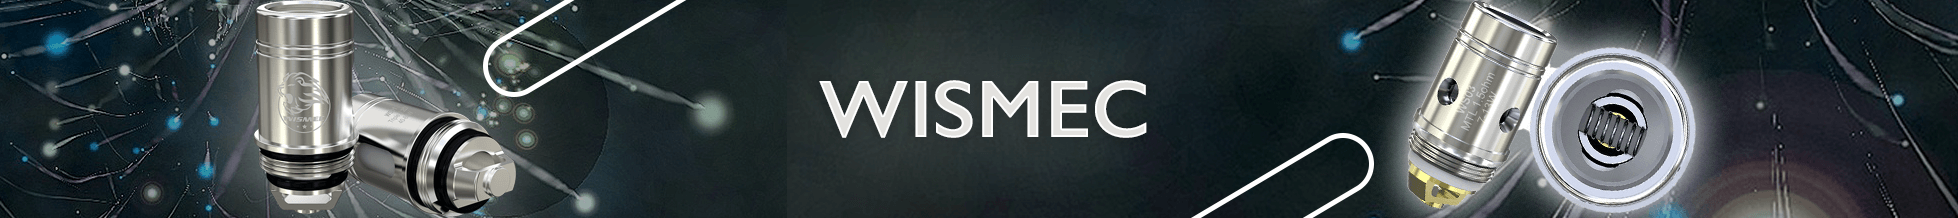 wimac-category-banner.png